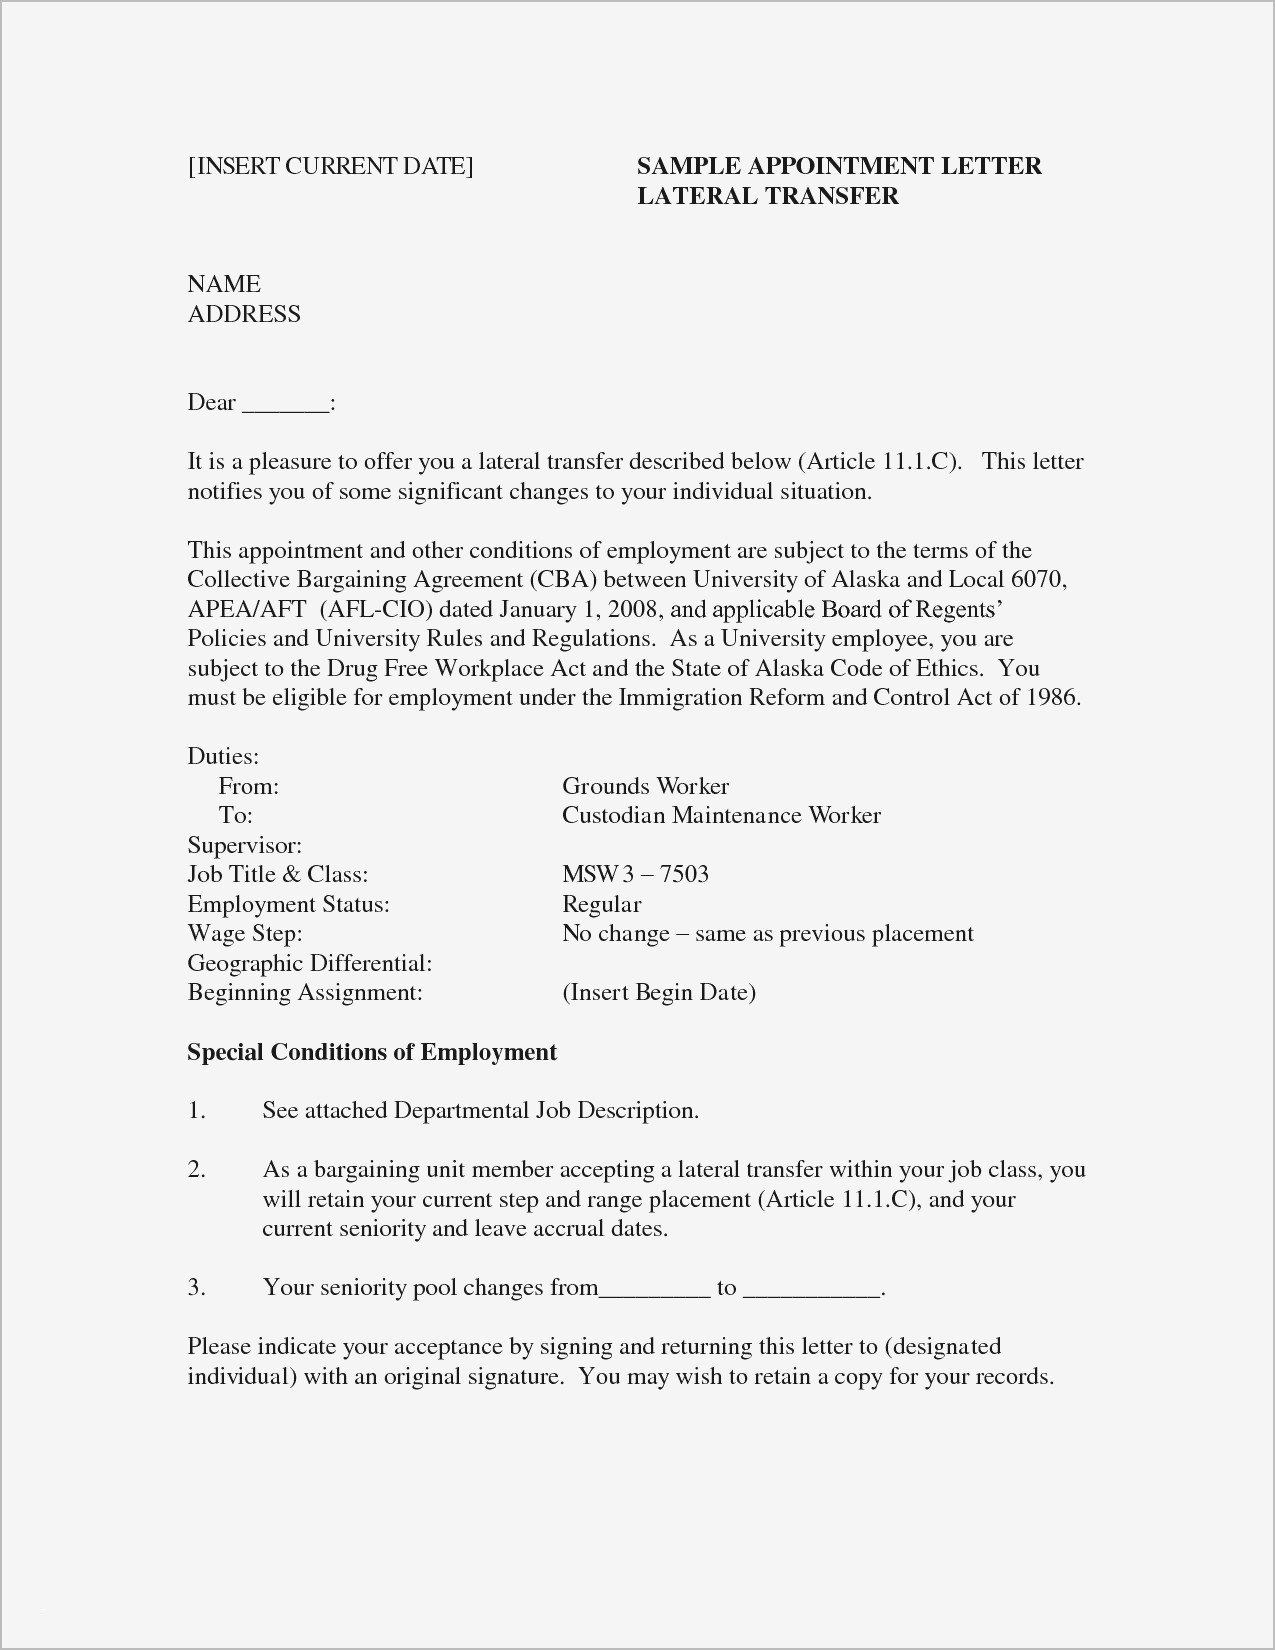 Professional Experience Resume - Sample Resume for Teenager with No Work Experience New Best Job